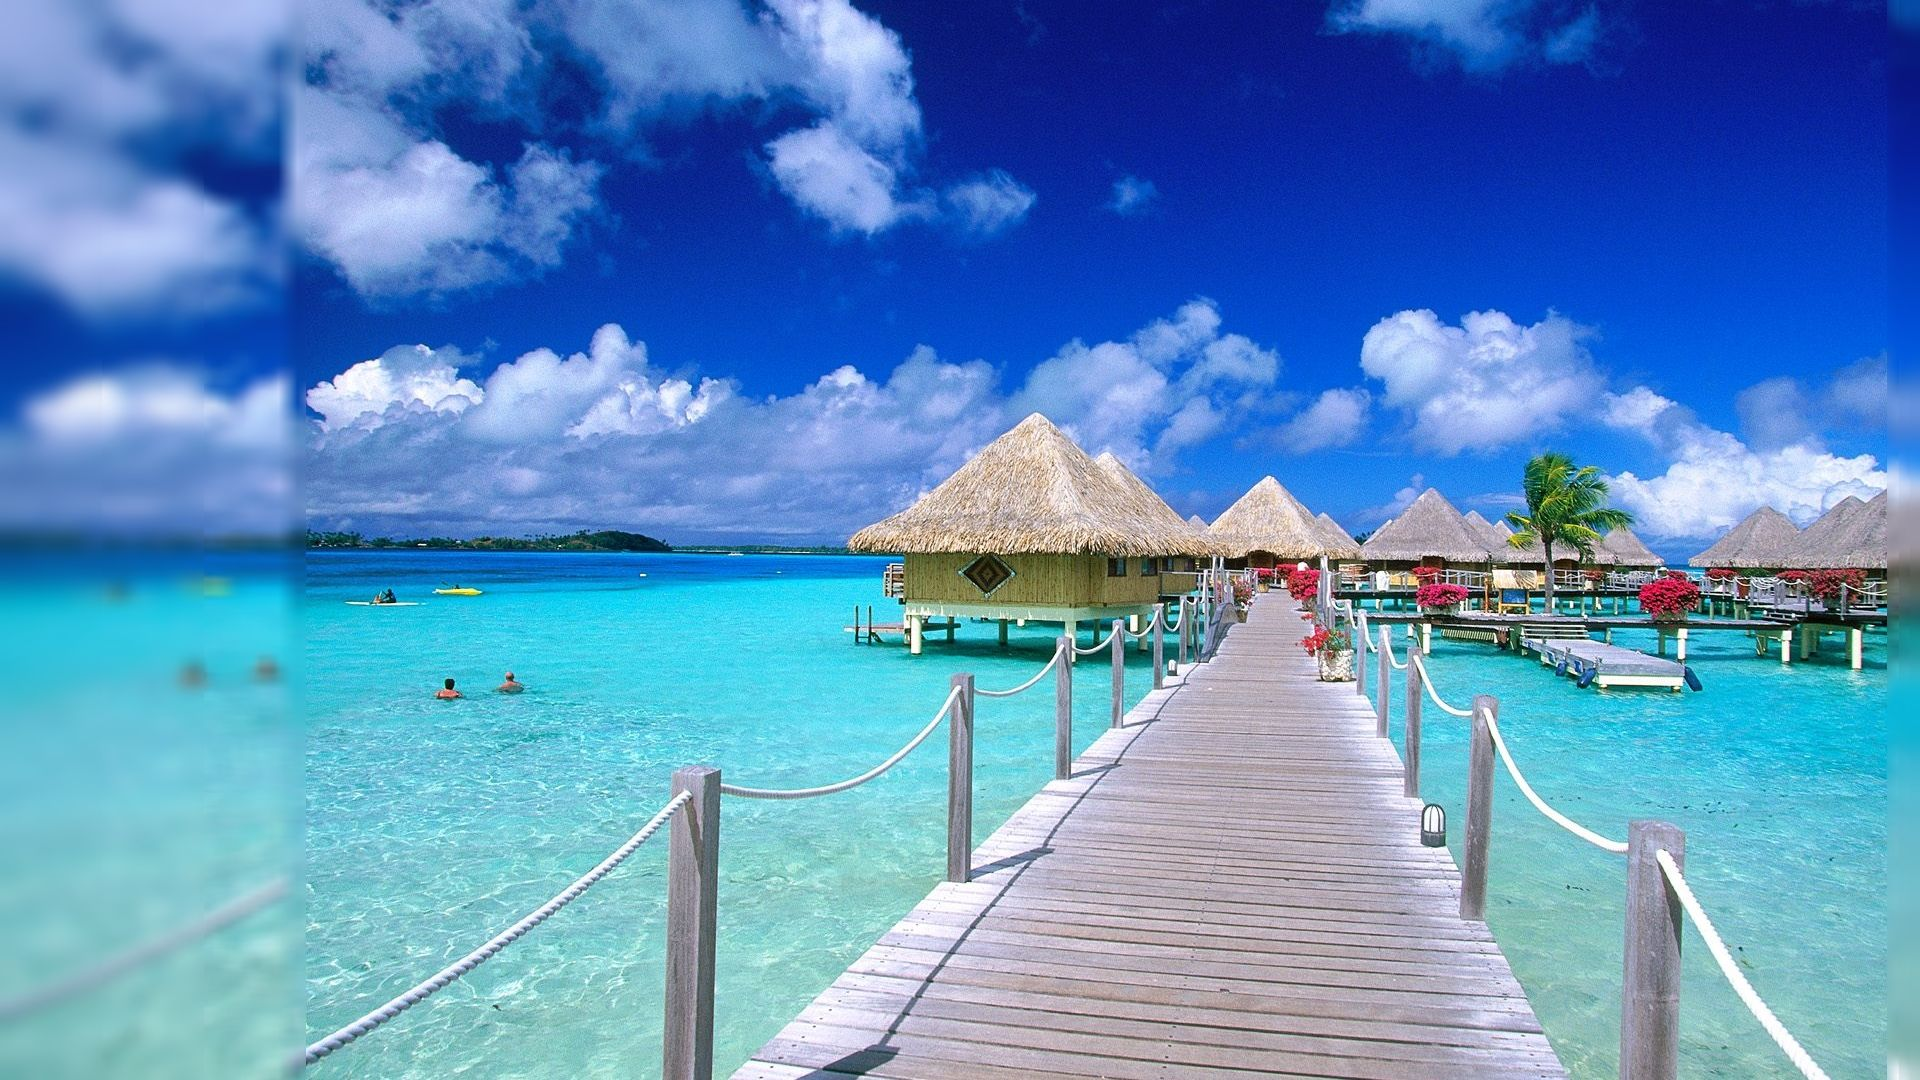 Fantastic Wallpaper High Resolution Bora Bora - d1d28765b34fe847dbd32413a859faf1  You Should Have_519590.jpg